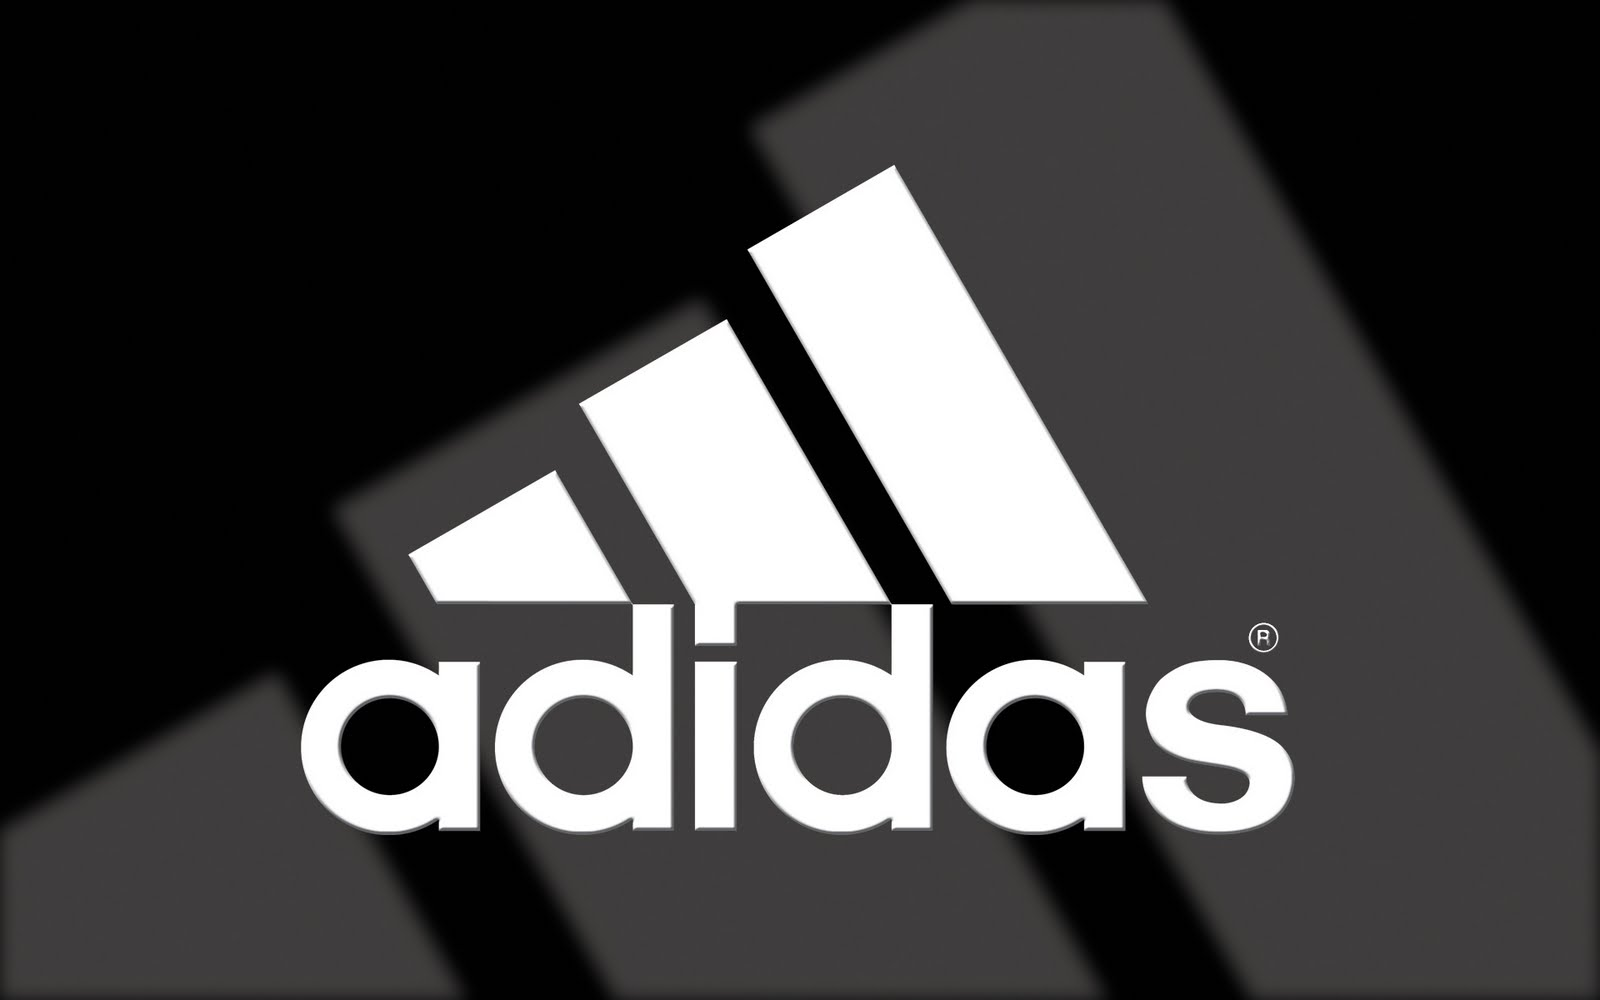 Adidas Logo HD Wallpapers Download Wallpapers in HD for your 1600x1000